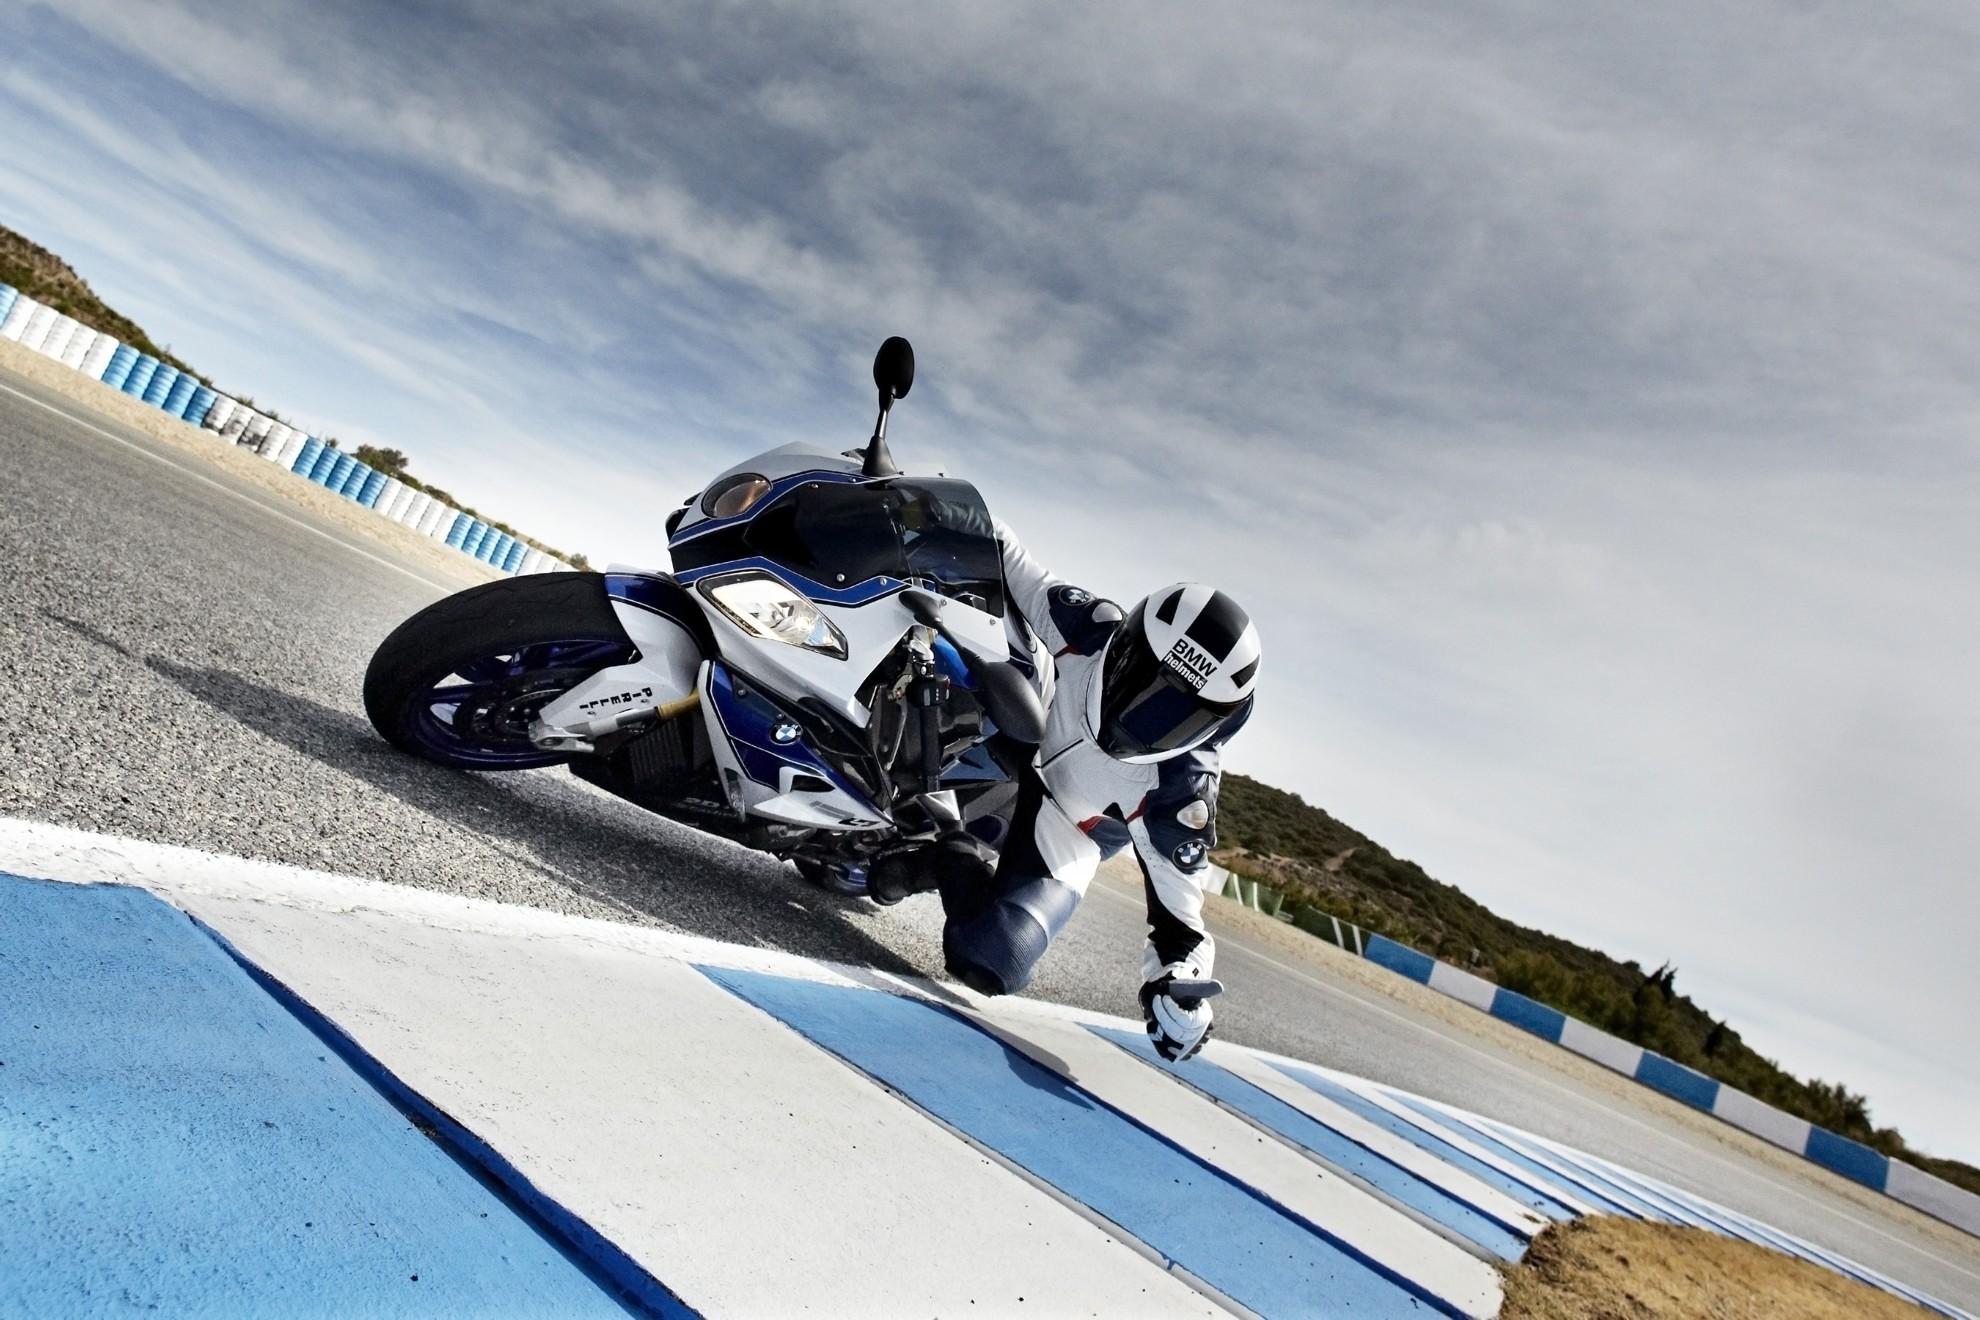 BMW_Best_Sports_Motorcycles_2014